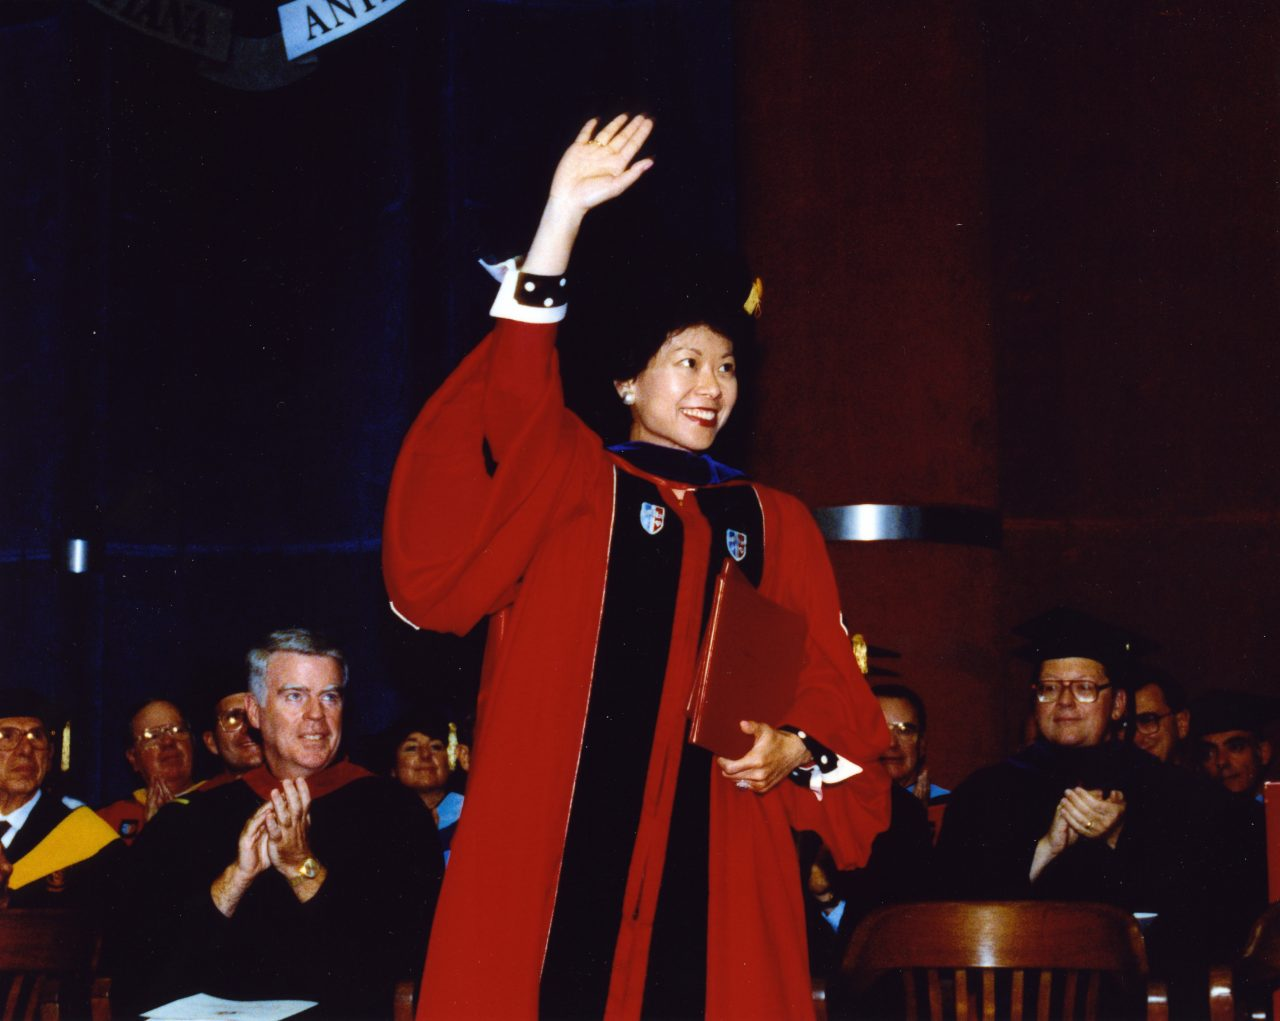 U.S. Deputy Secretary of Transportation Elaine Chao receiving an honorary doctorate degree from St. John's University in New York.